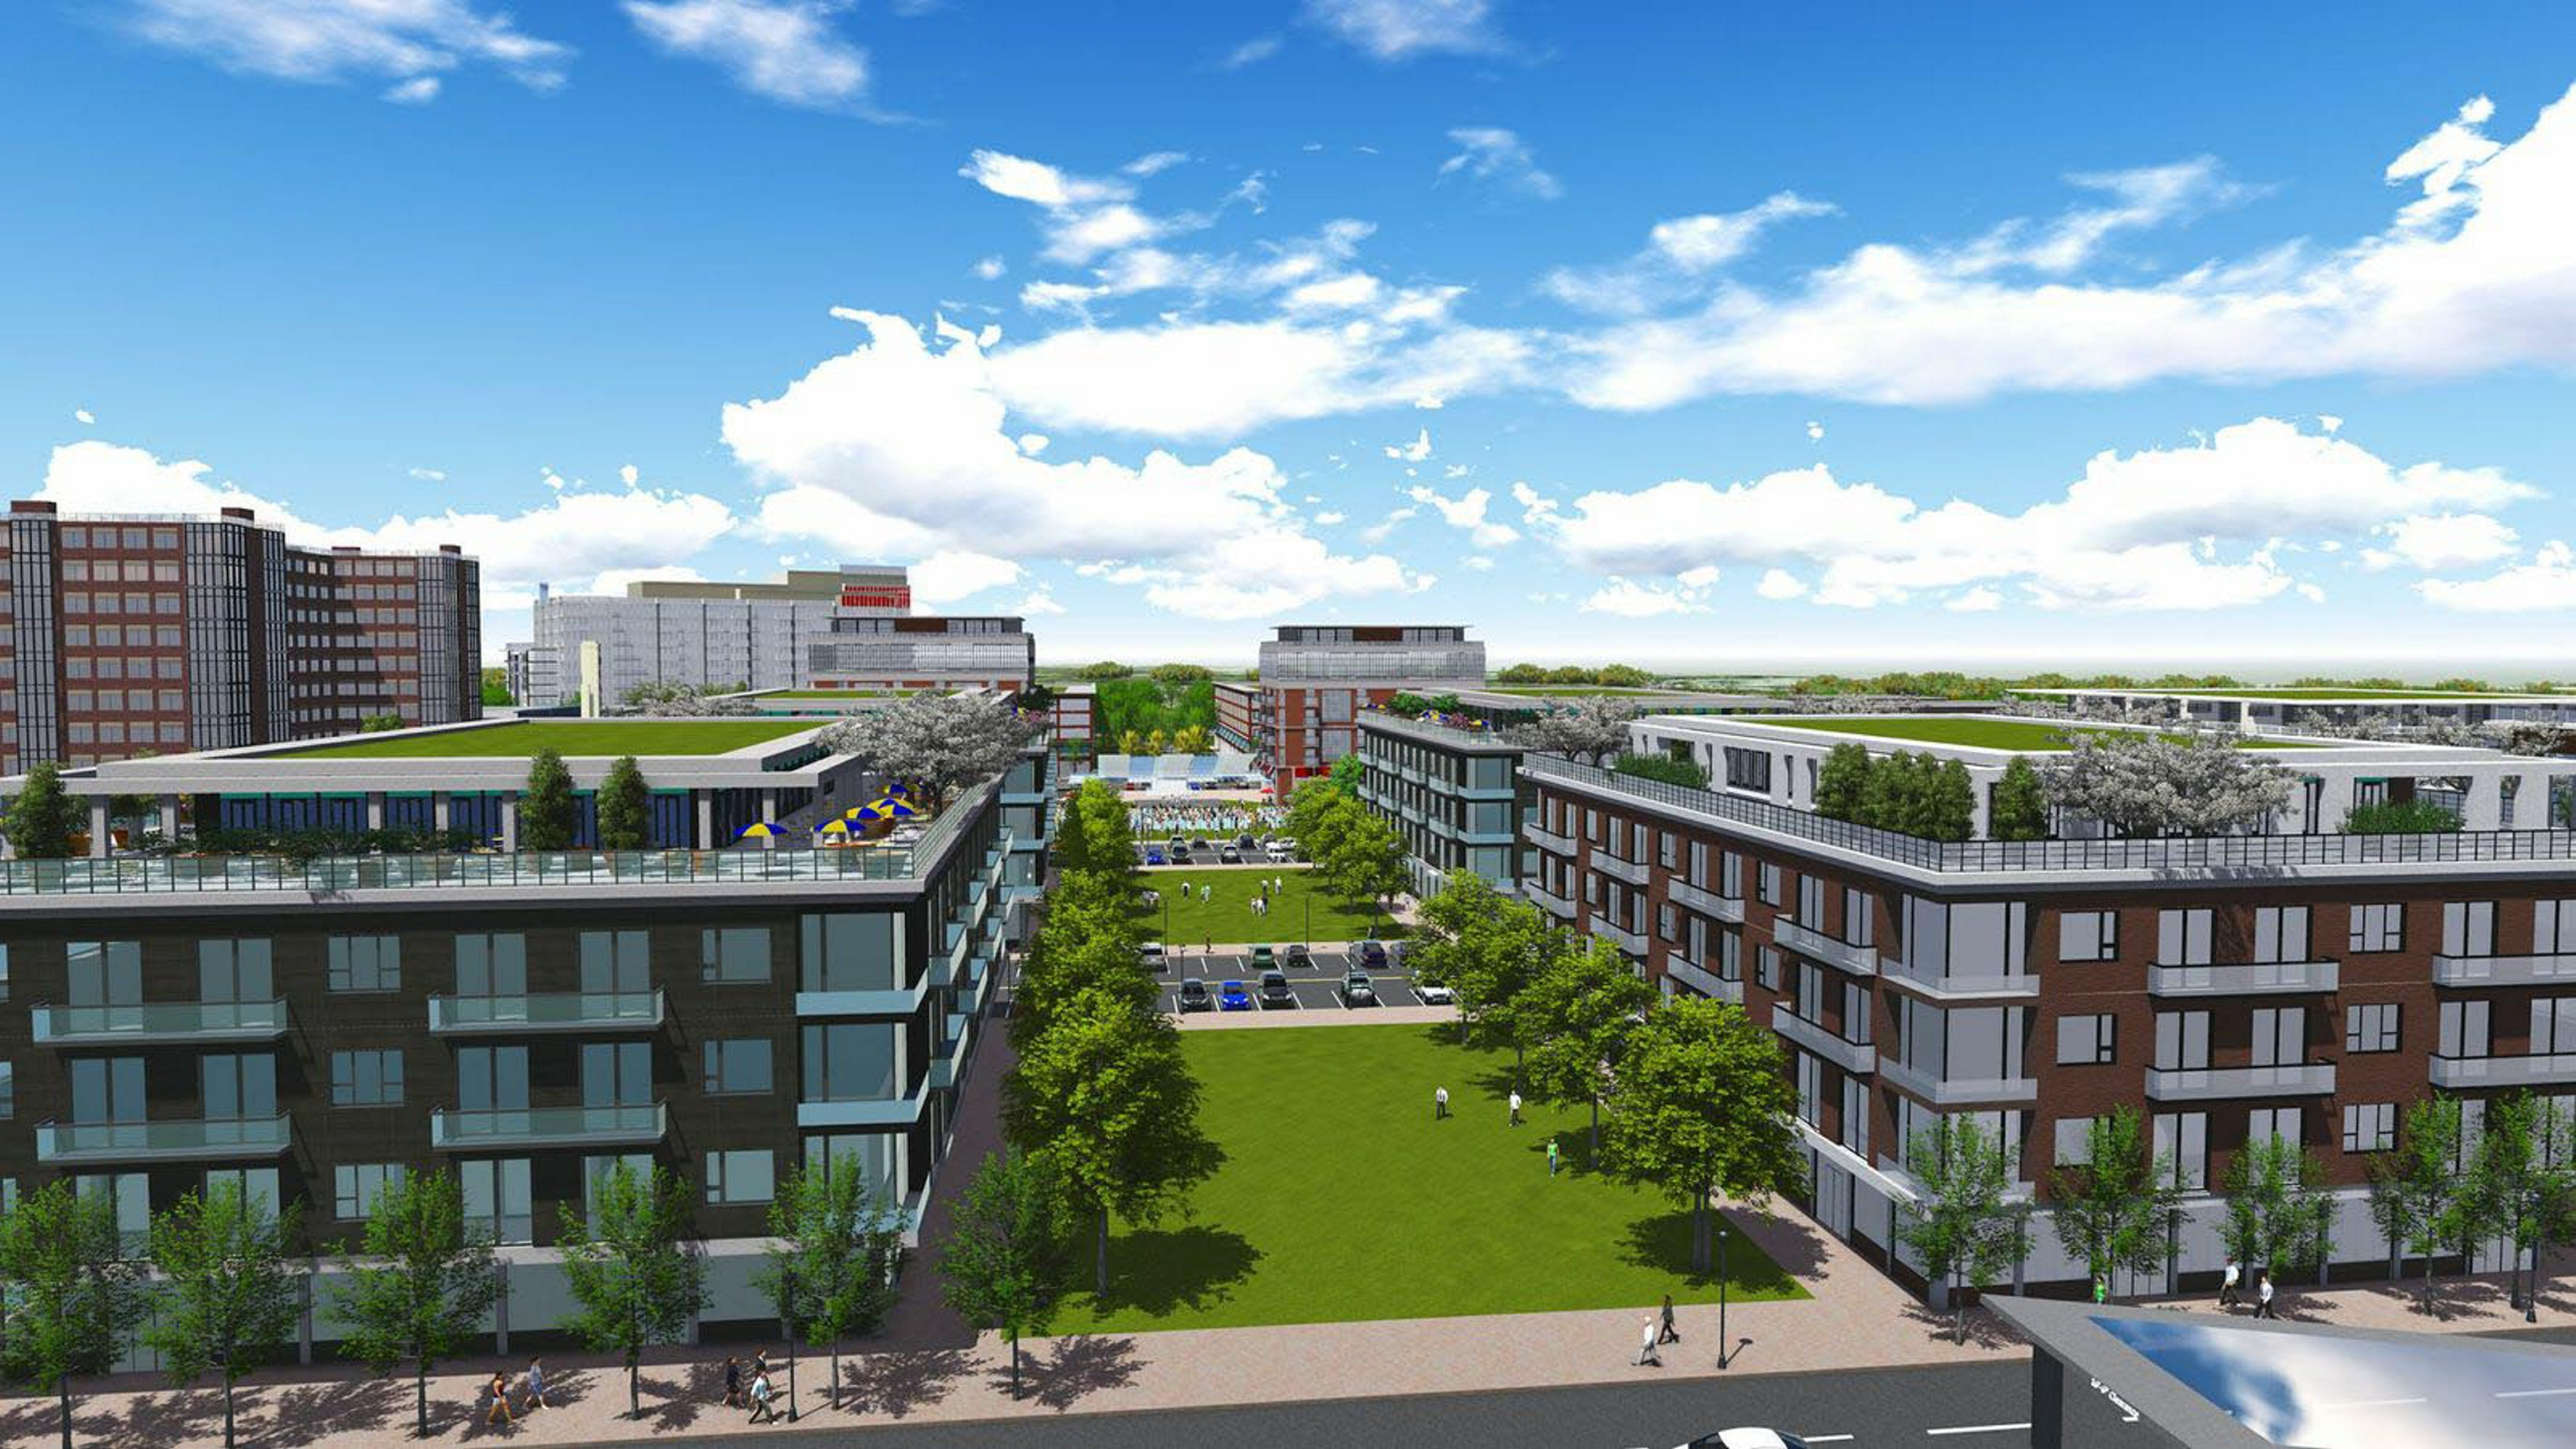 A rendering of the proposed Seneca Place project, which would include two hotels, residential apartments, office buildings, retail shopping, a theater and community facilities atop a vast underground parking garage.